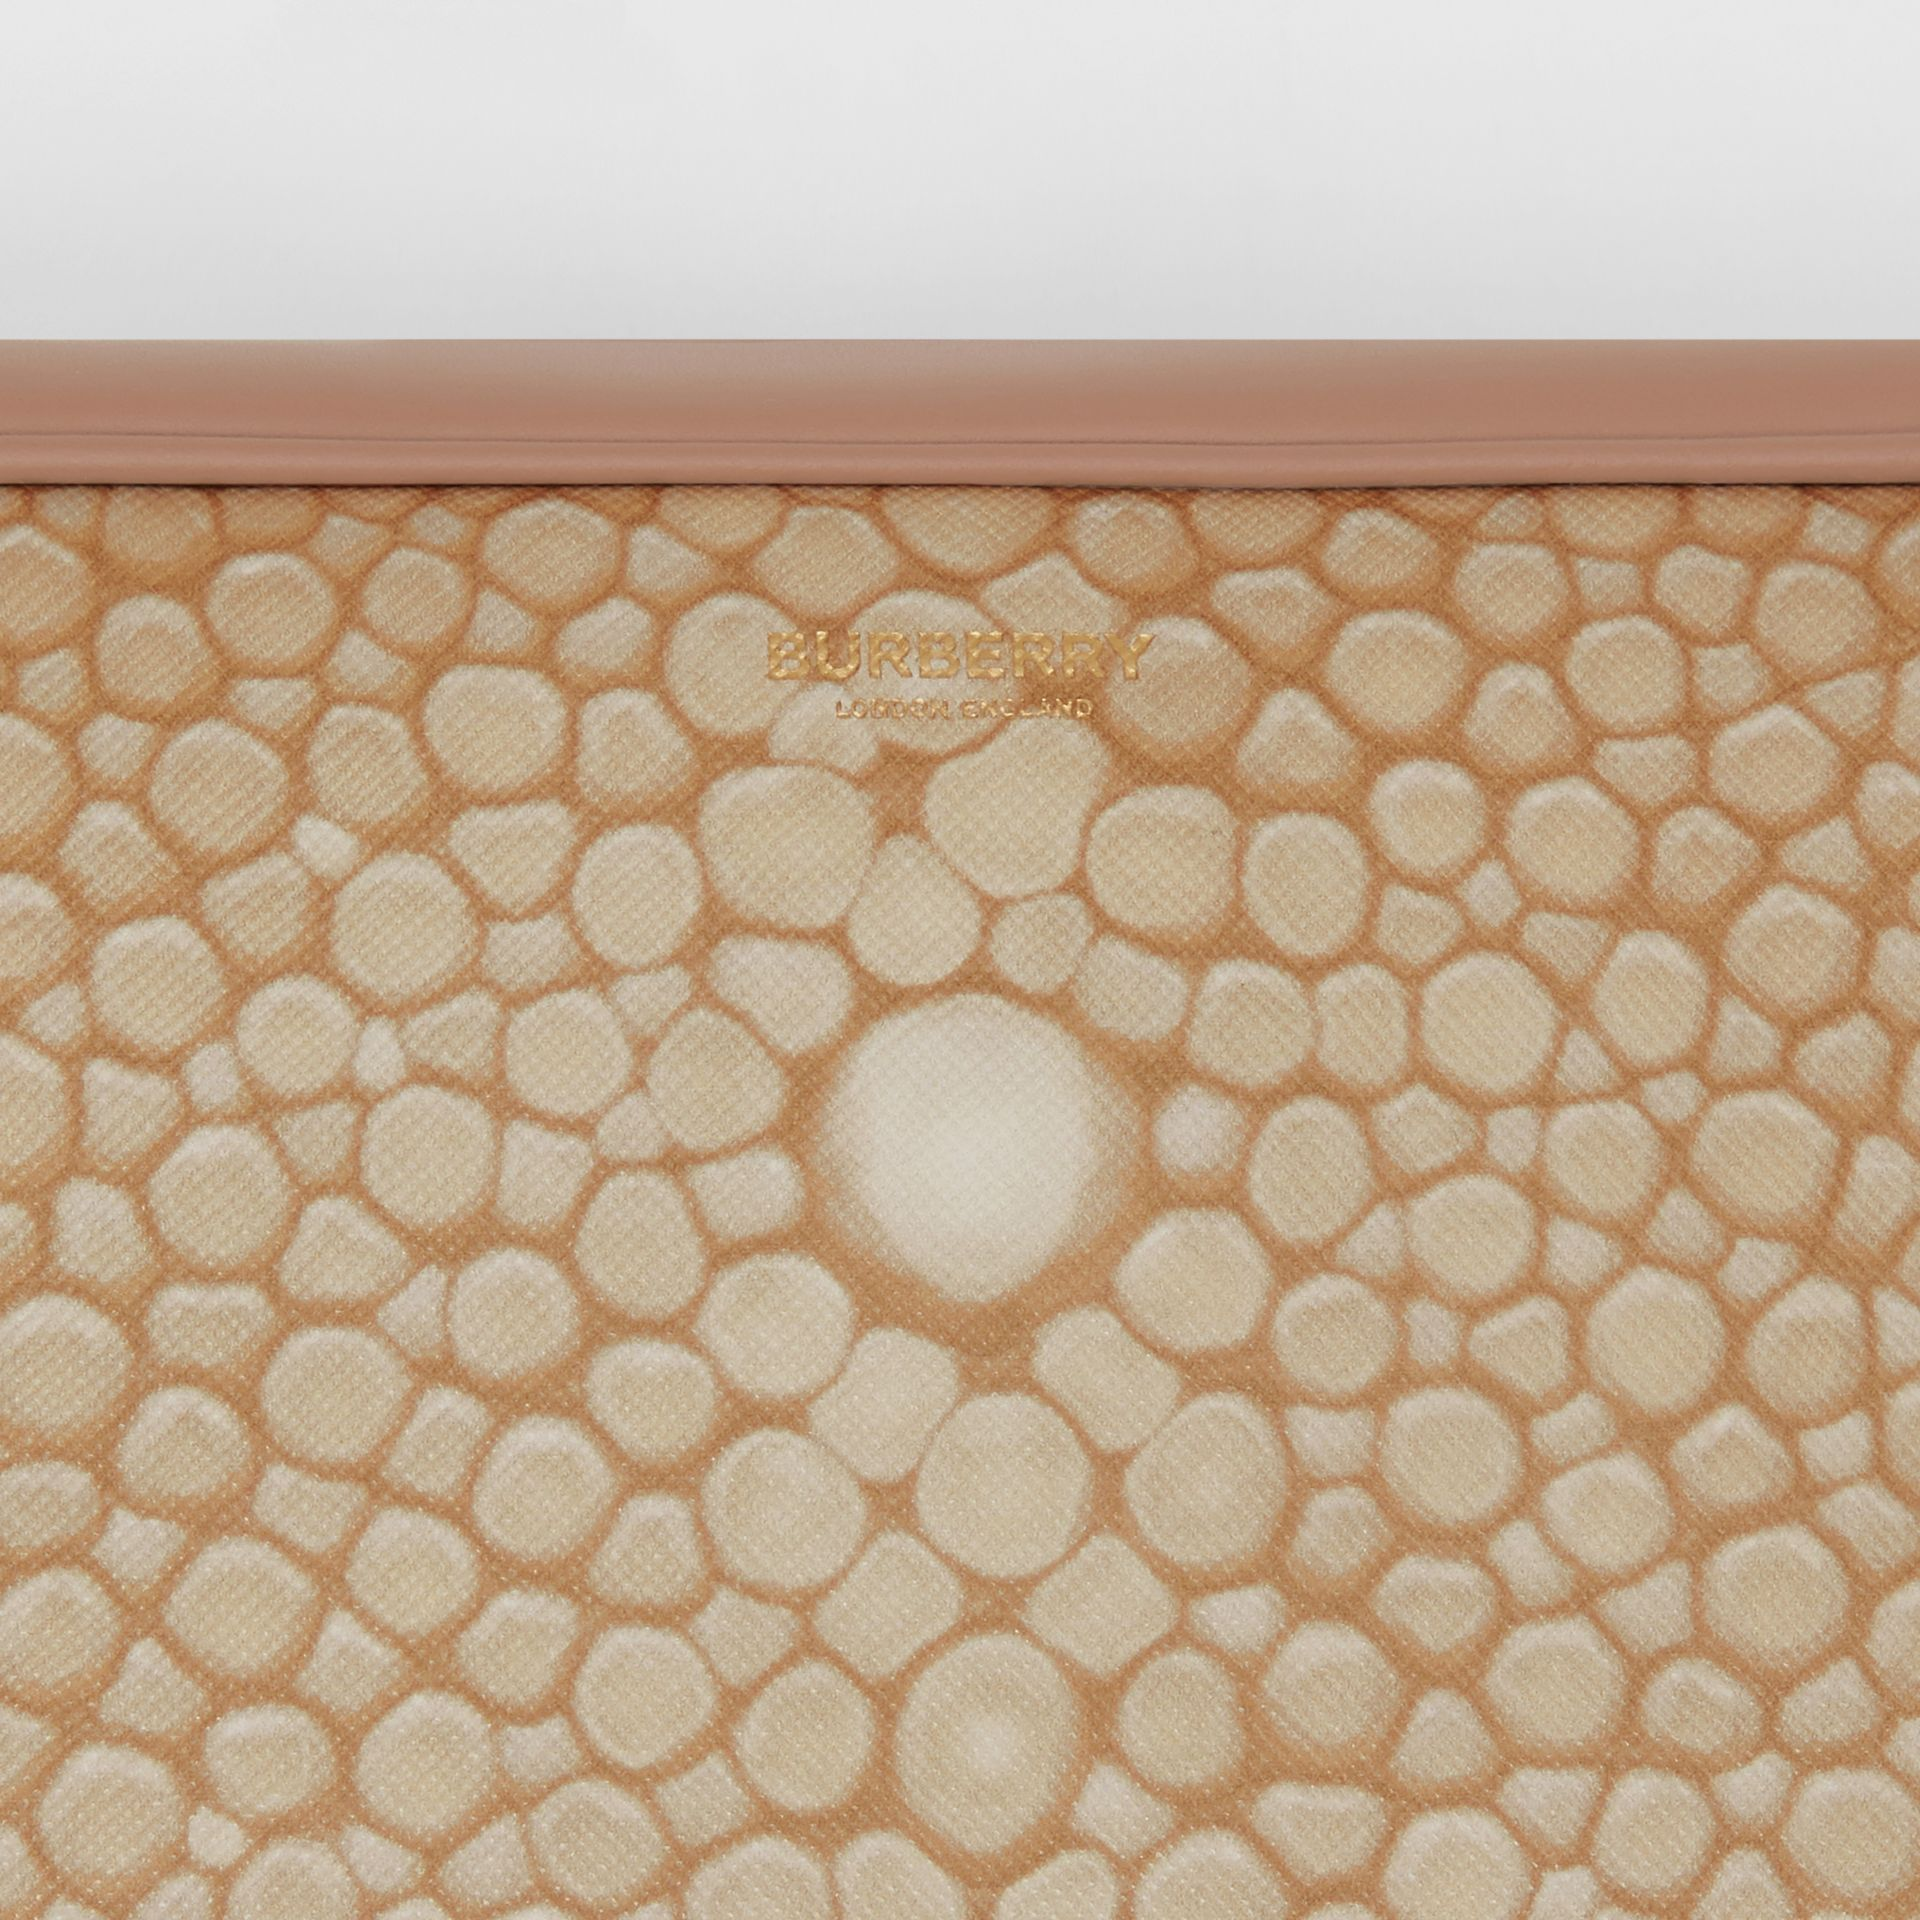 Fish-scale Print and Leather Cube Bum Bag in Light Sand - Women | Burberry Australia - gallery image 1